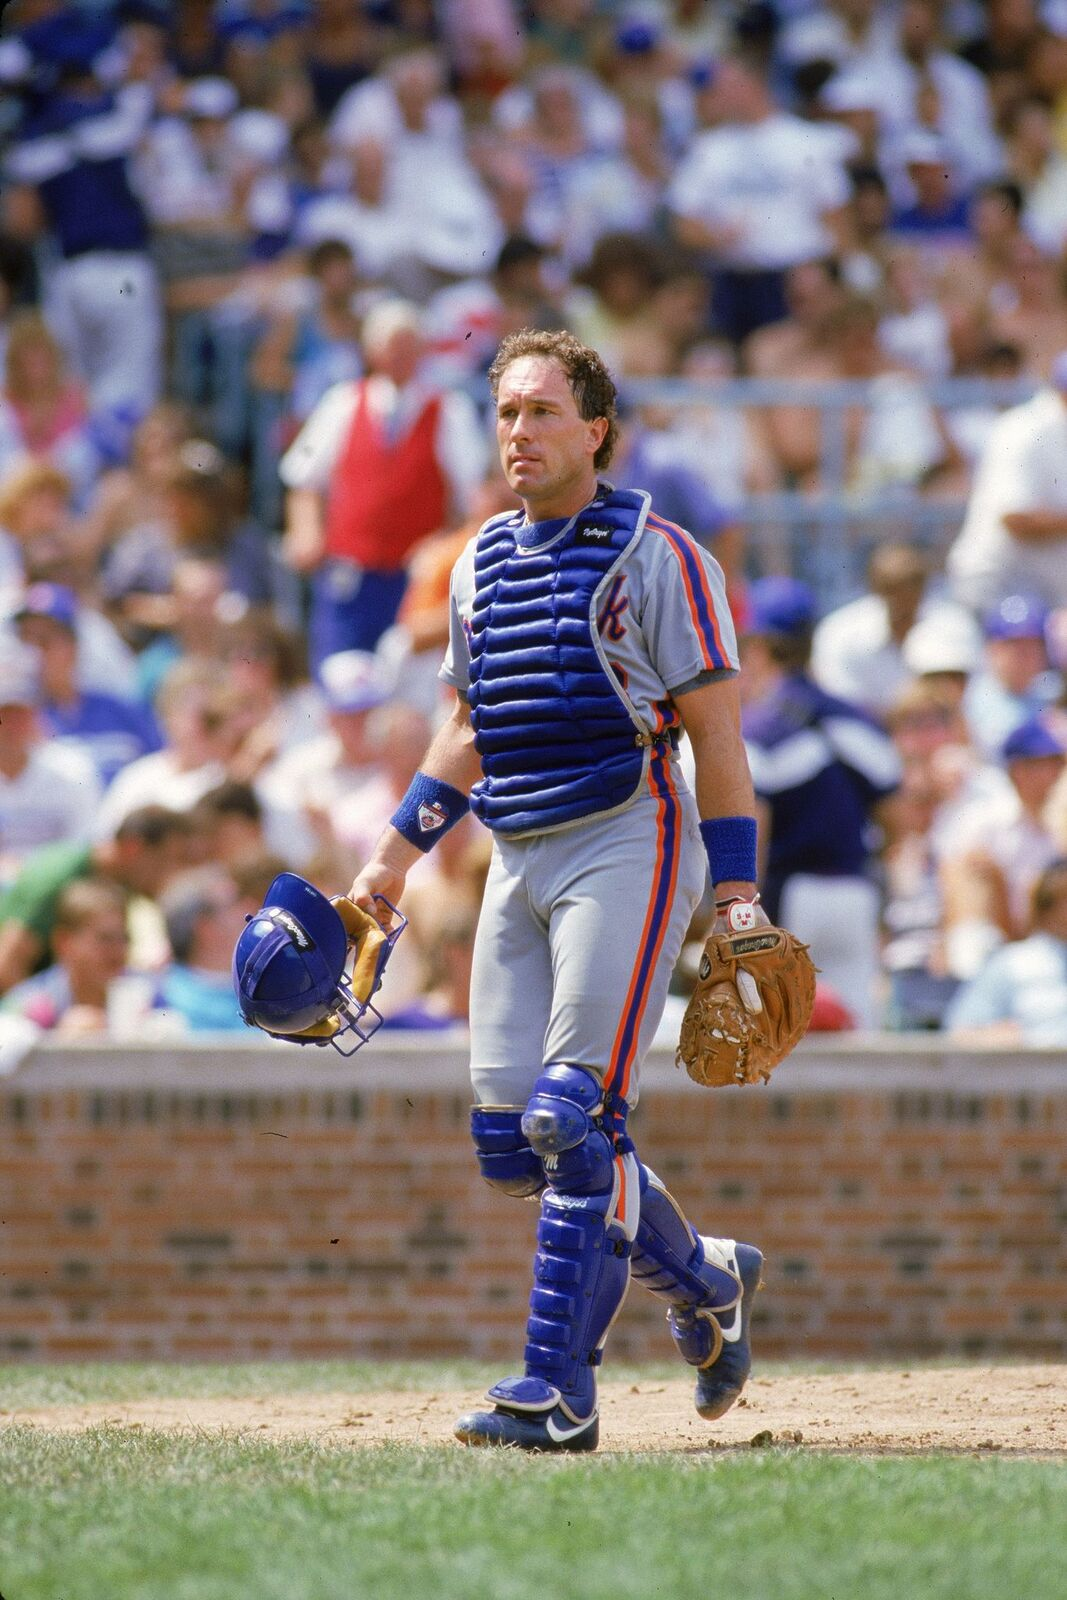 Gary Carter in catcher's gear during an MLB game at Wrigley Field in Chicago, Illinois | Source: Getty Images